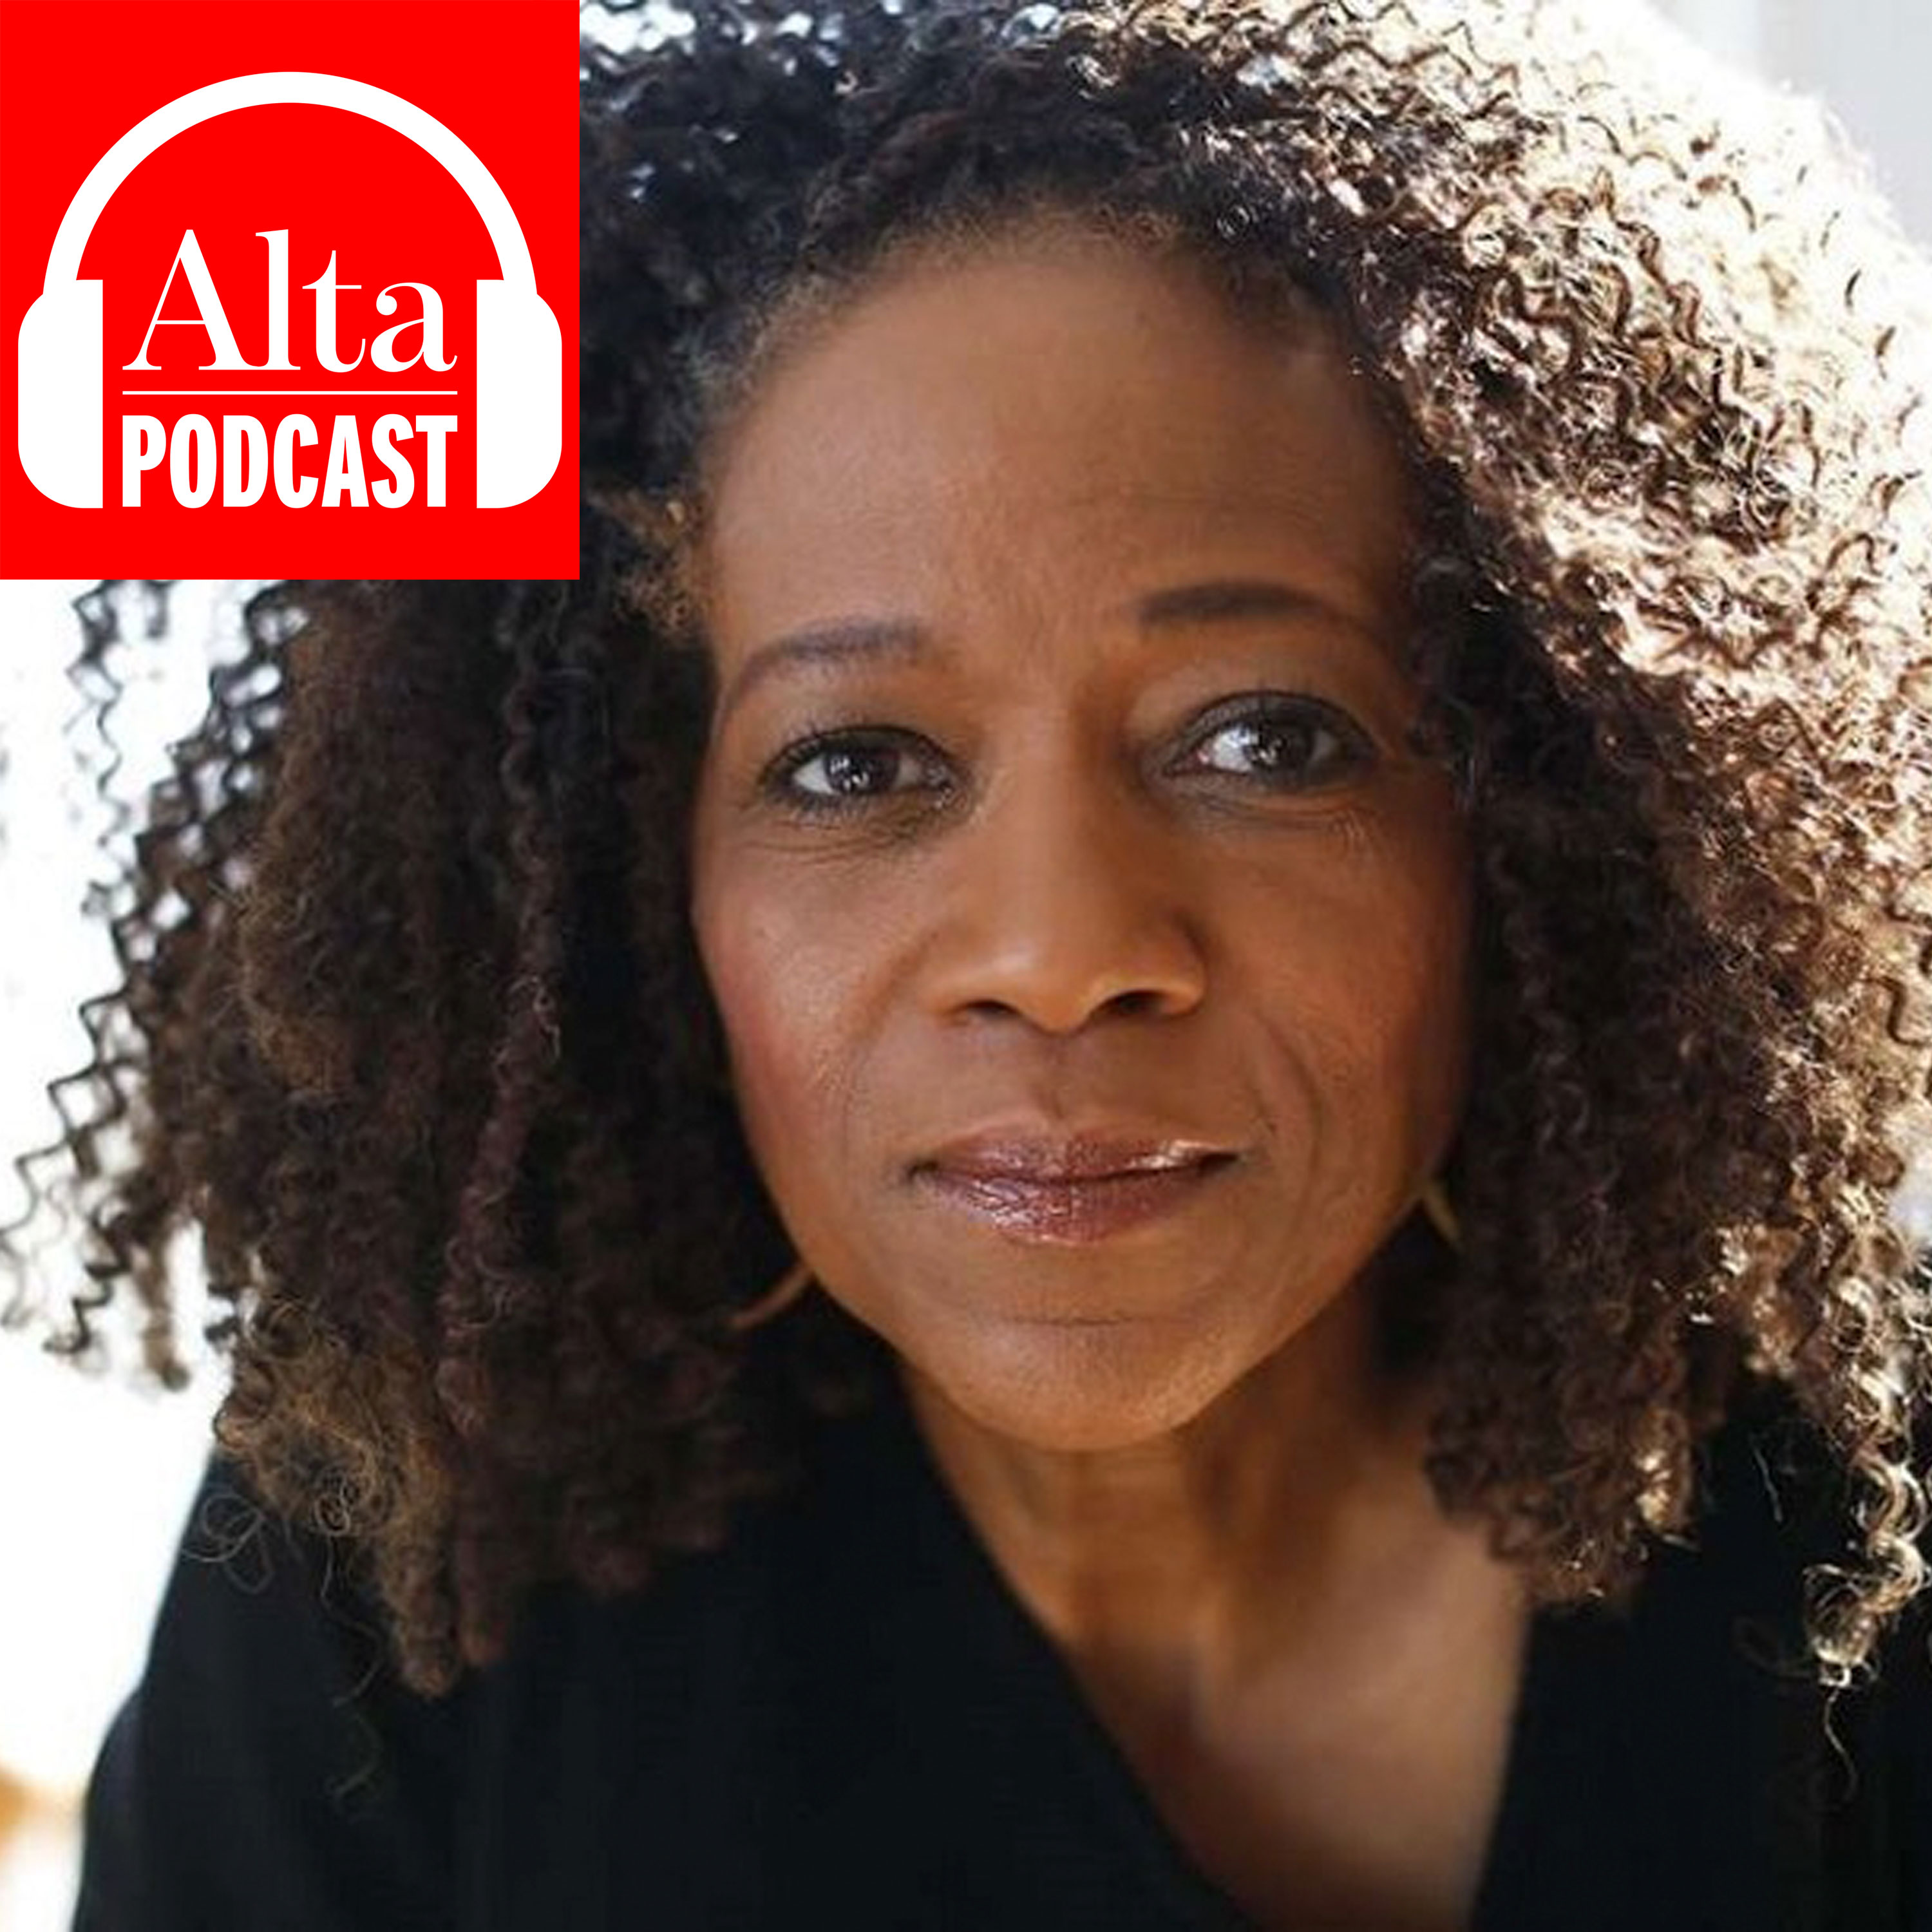 Recorded Live: Jazz Singer Paula West Gets Personal